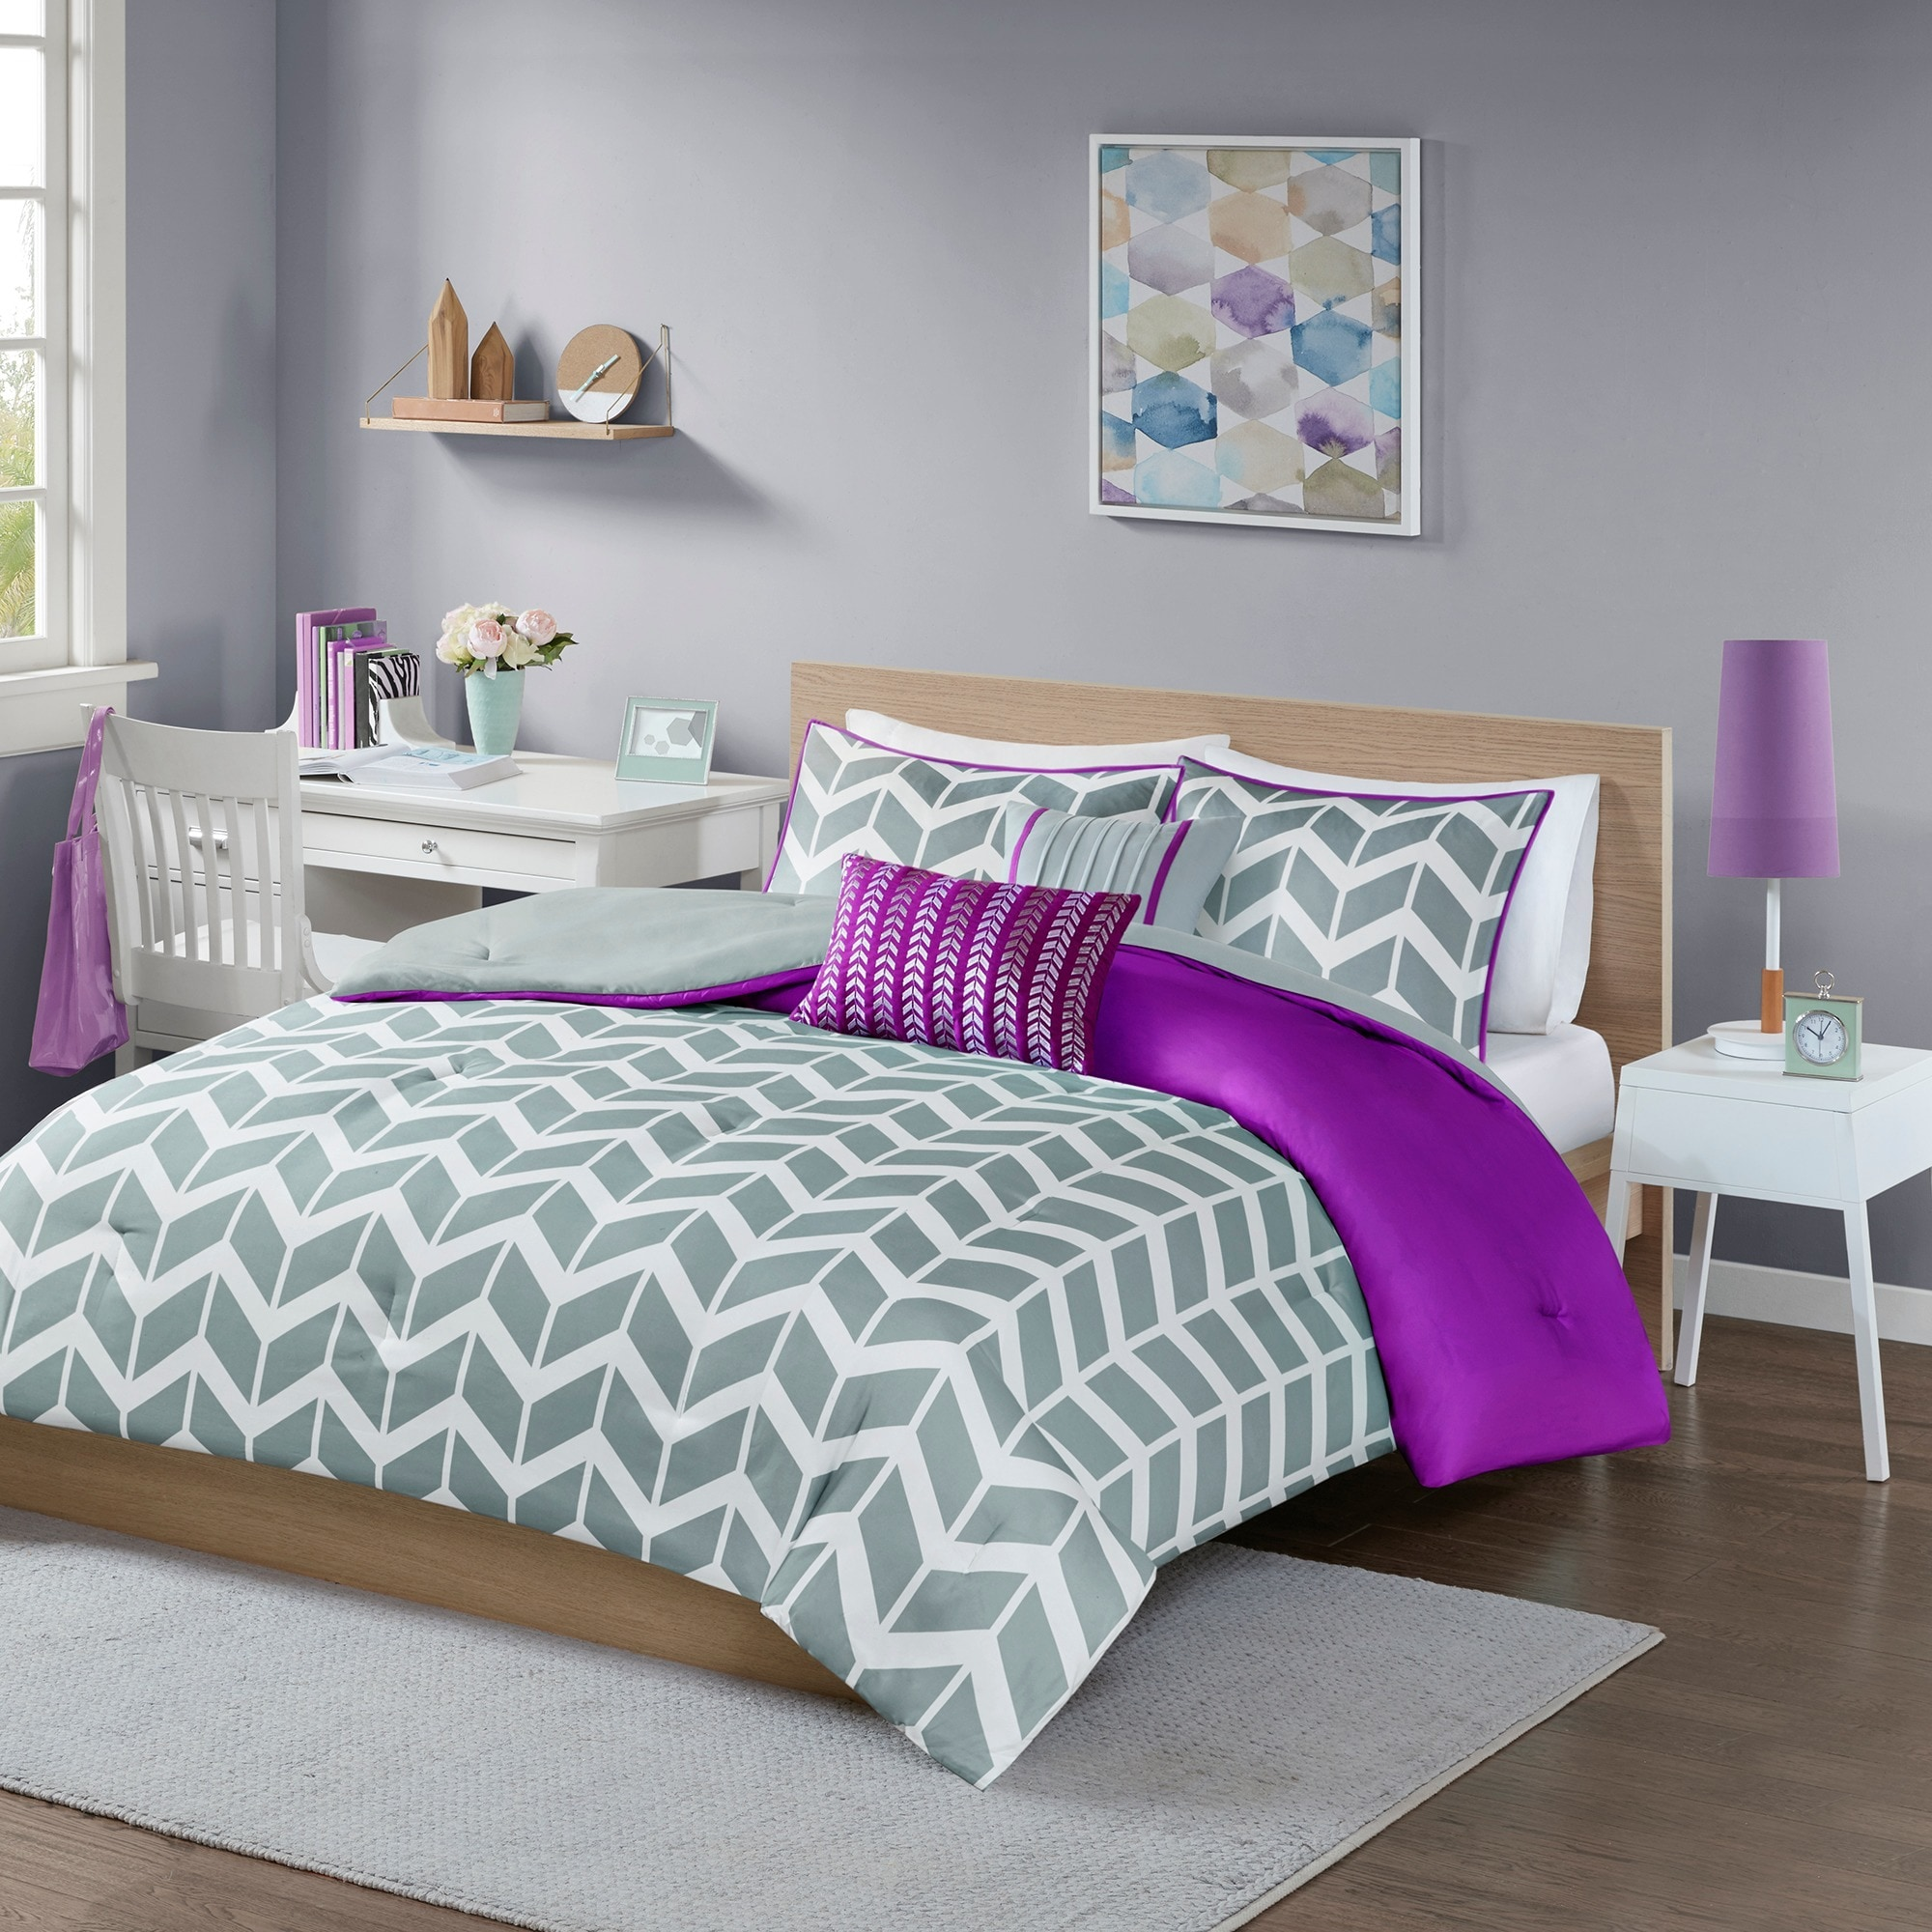 comforter plum bed dp park set madison queen home piece hampton purple kitchen bedding com amazon